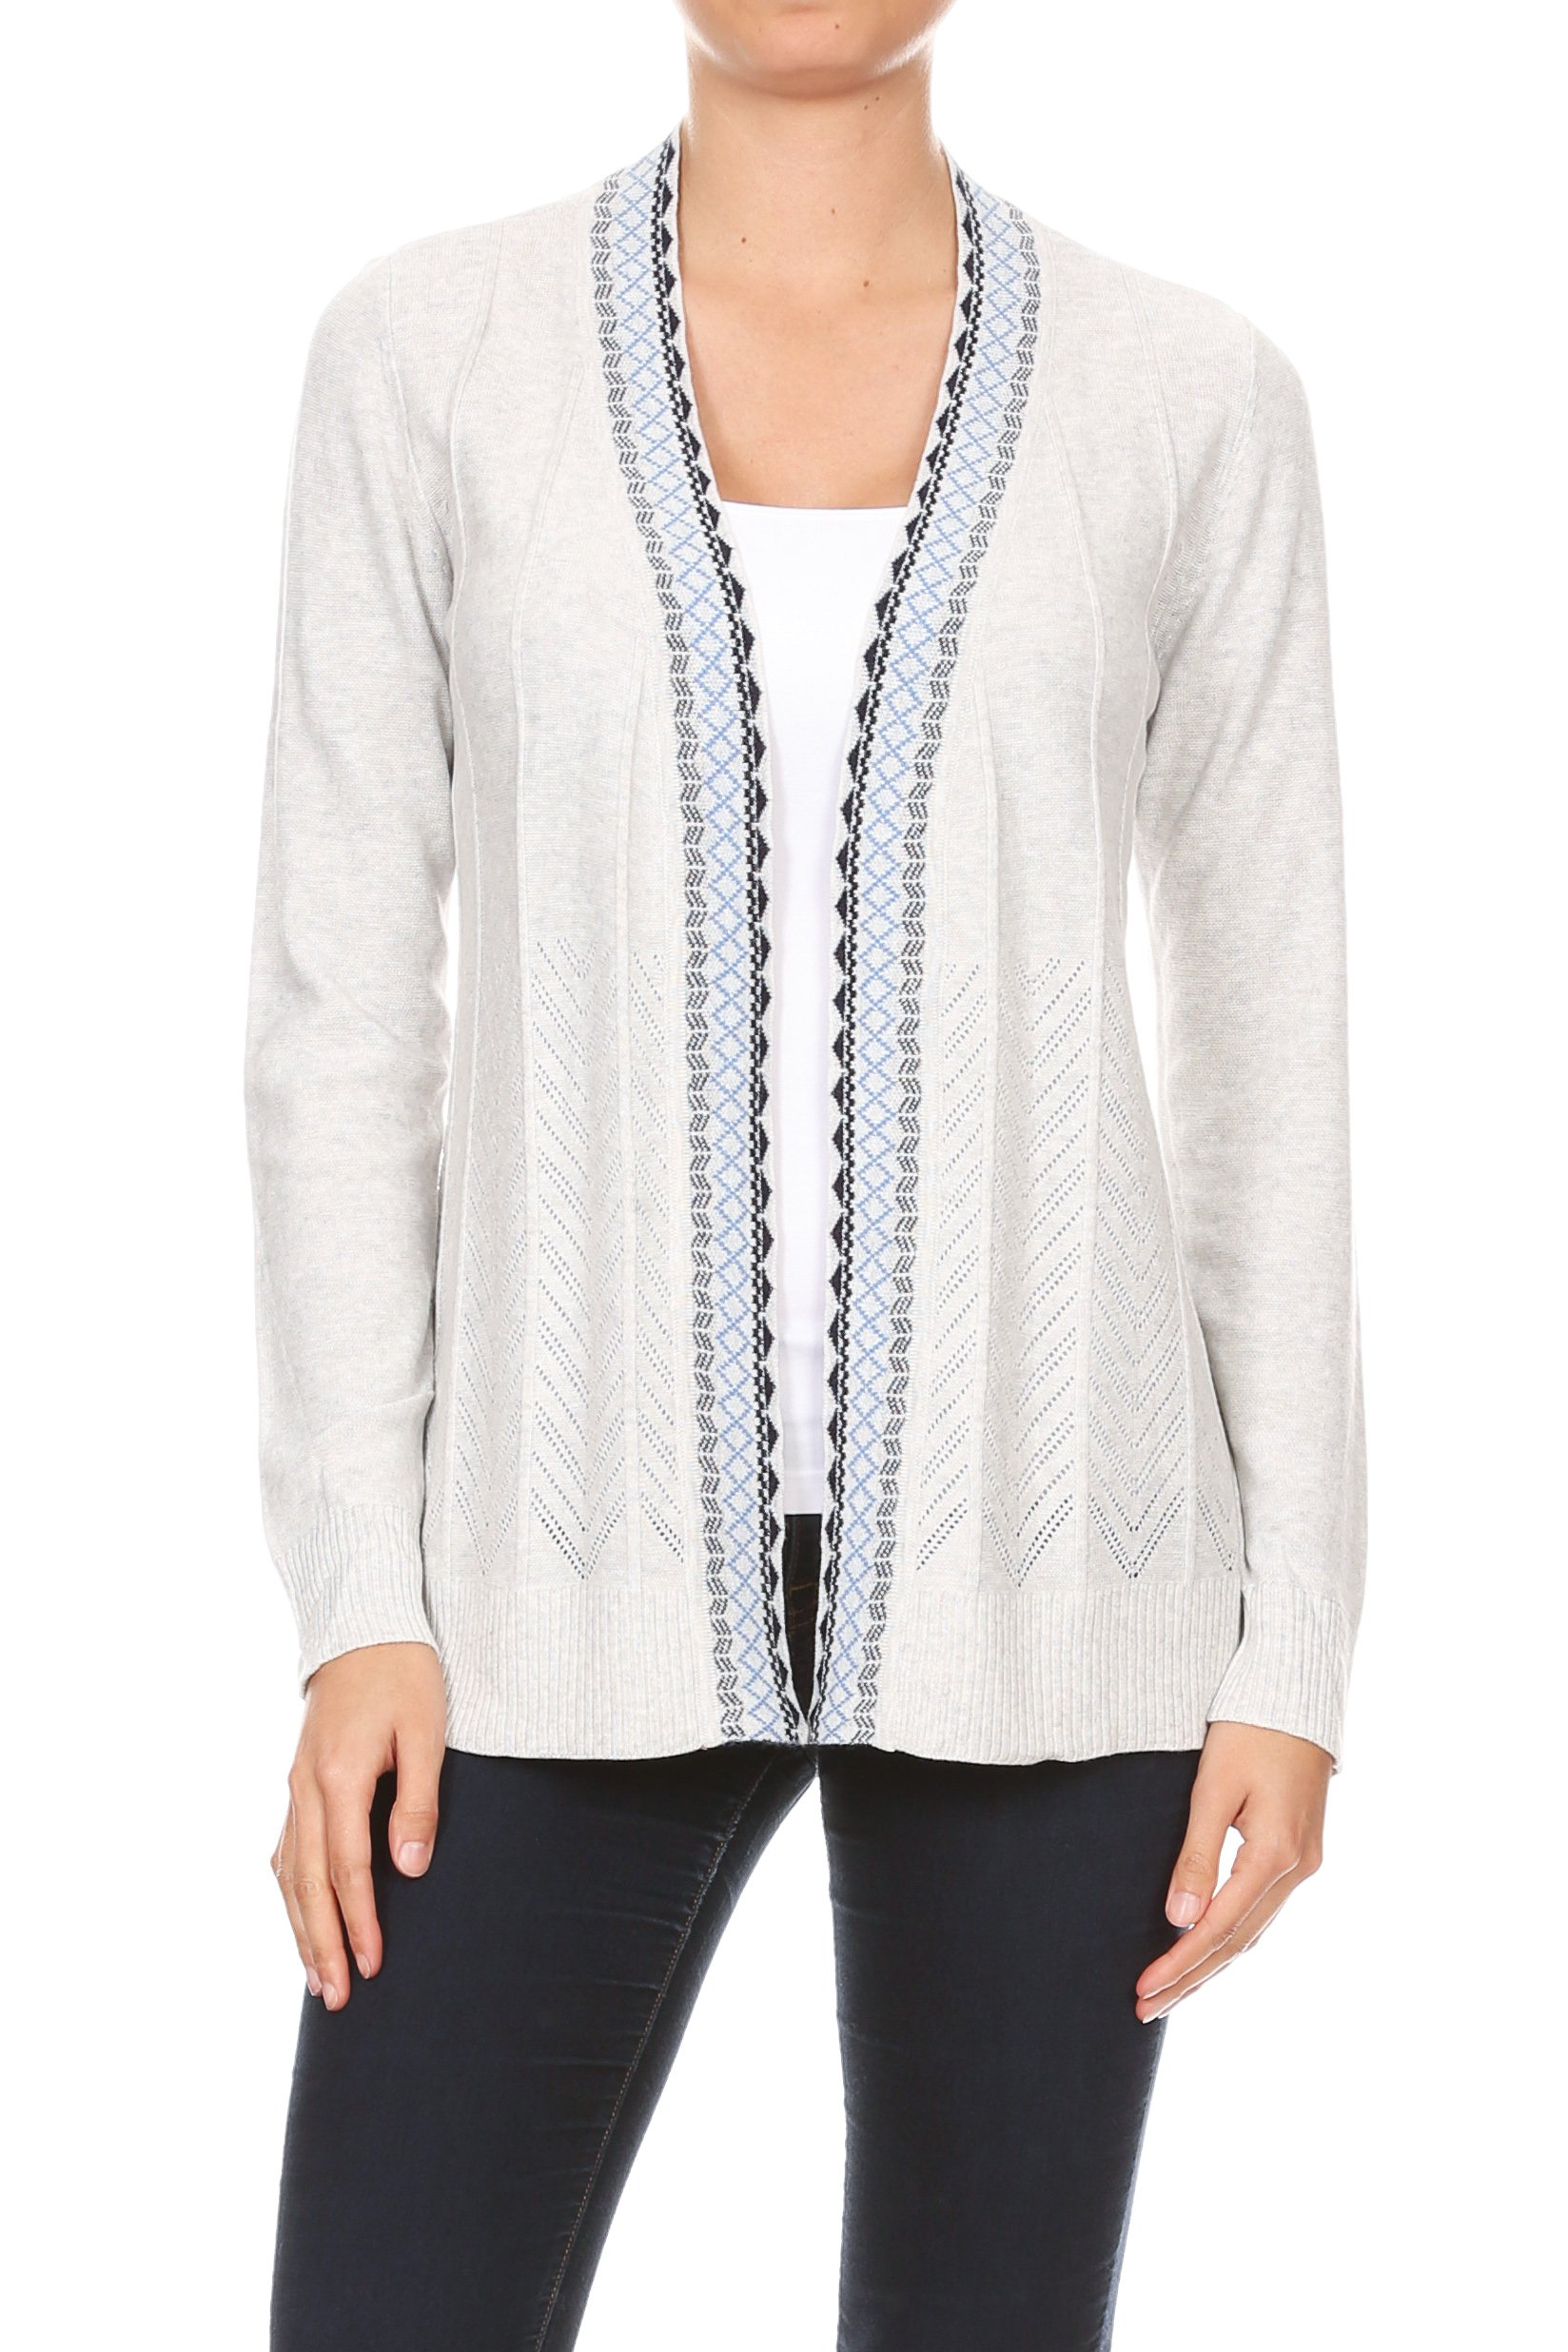 Embroidered Placket Cardigan with Pointelle Detail -Heather Grey - Front